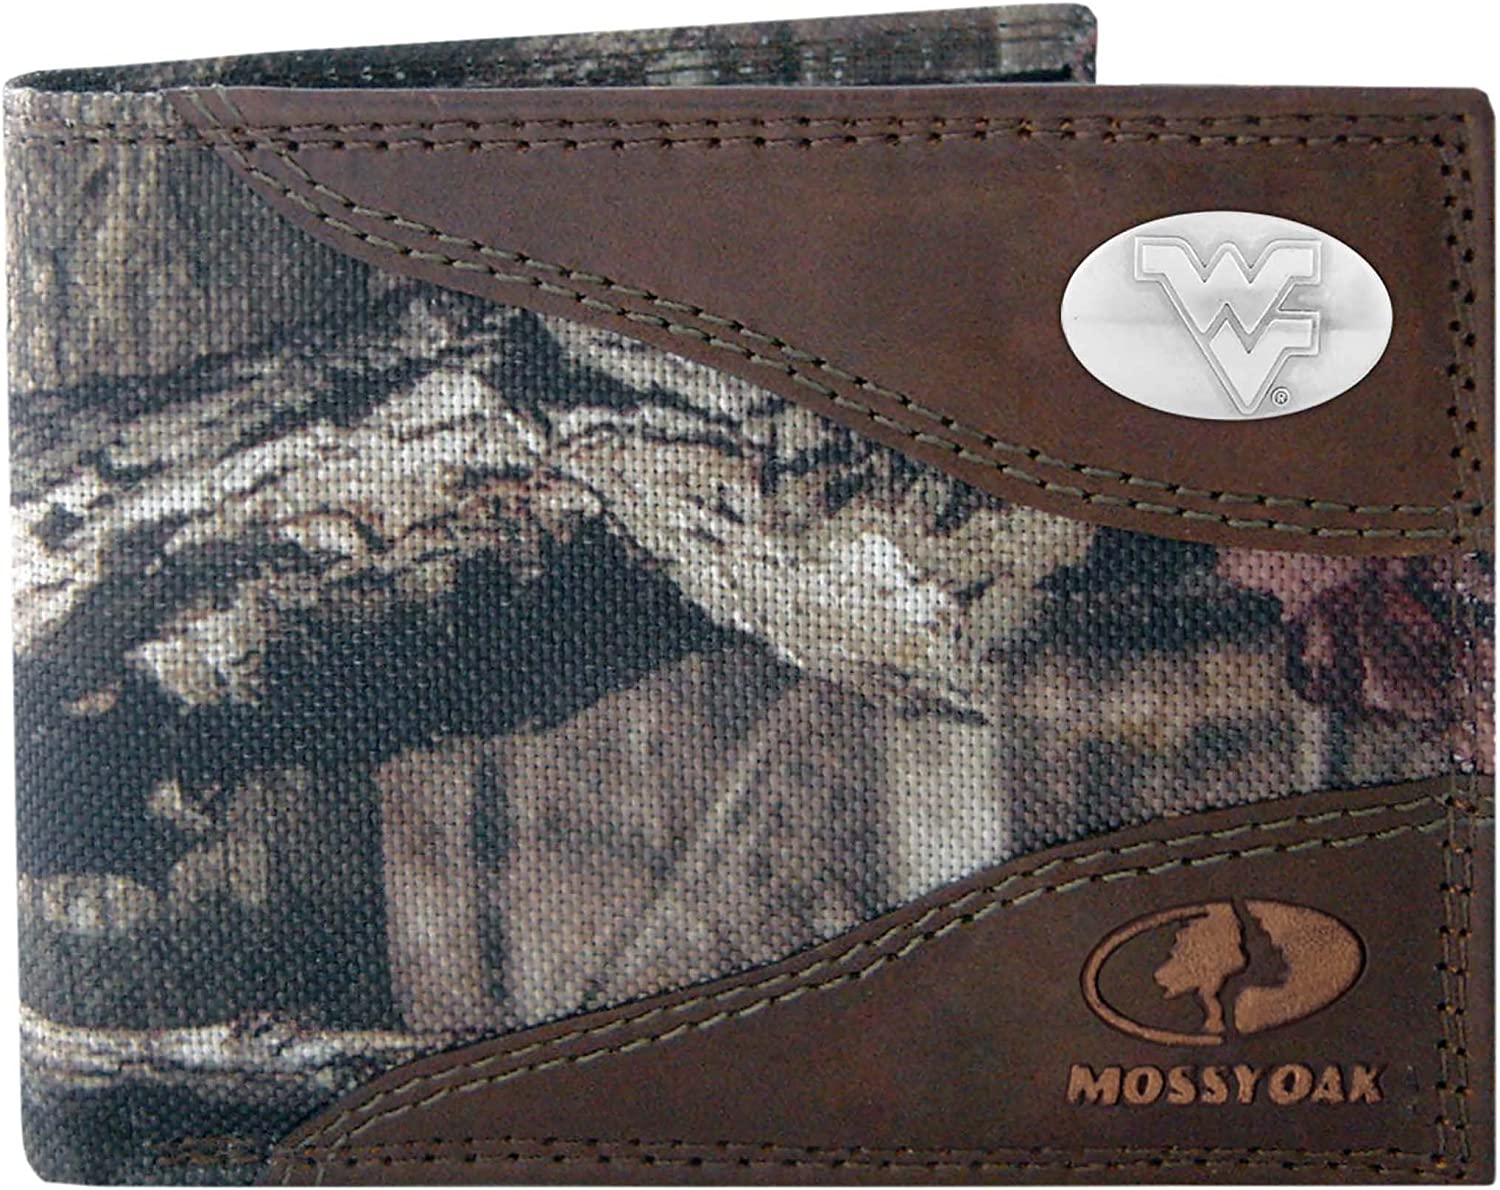 ZEP-PRO Men's Some reservation Mossy Oak At the price of surprise Nylon Wallet Leather and Concho Passcase